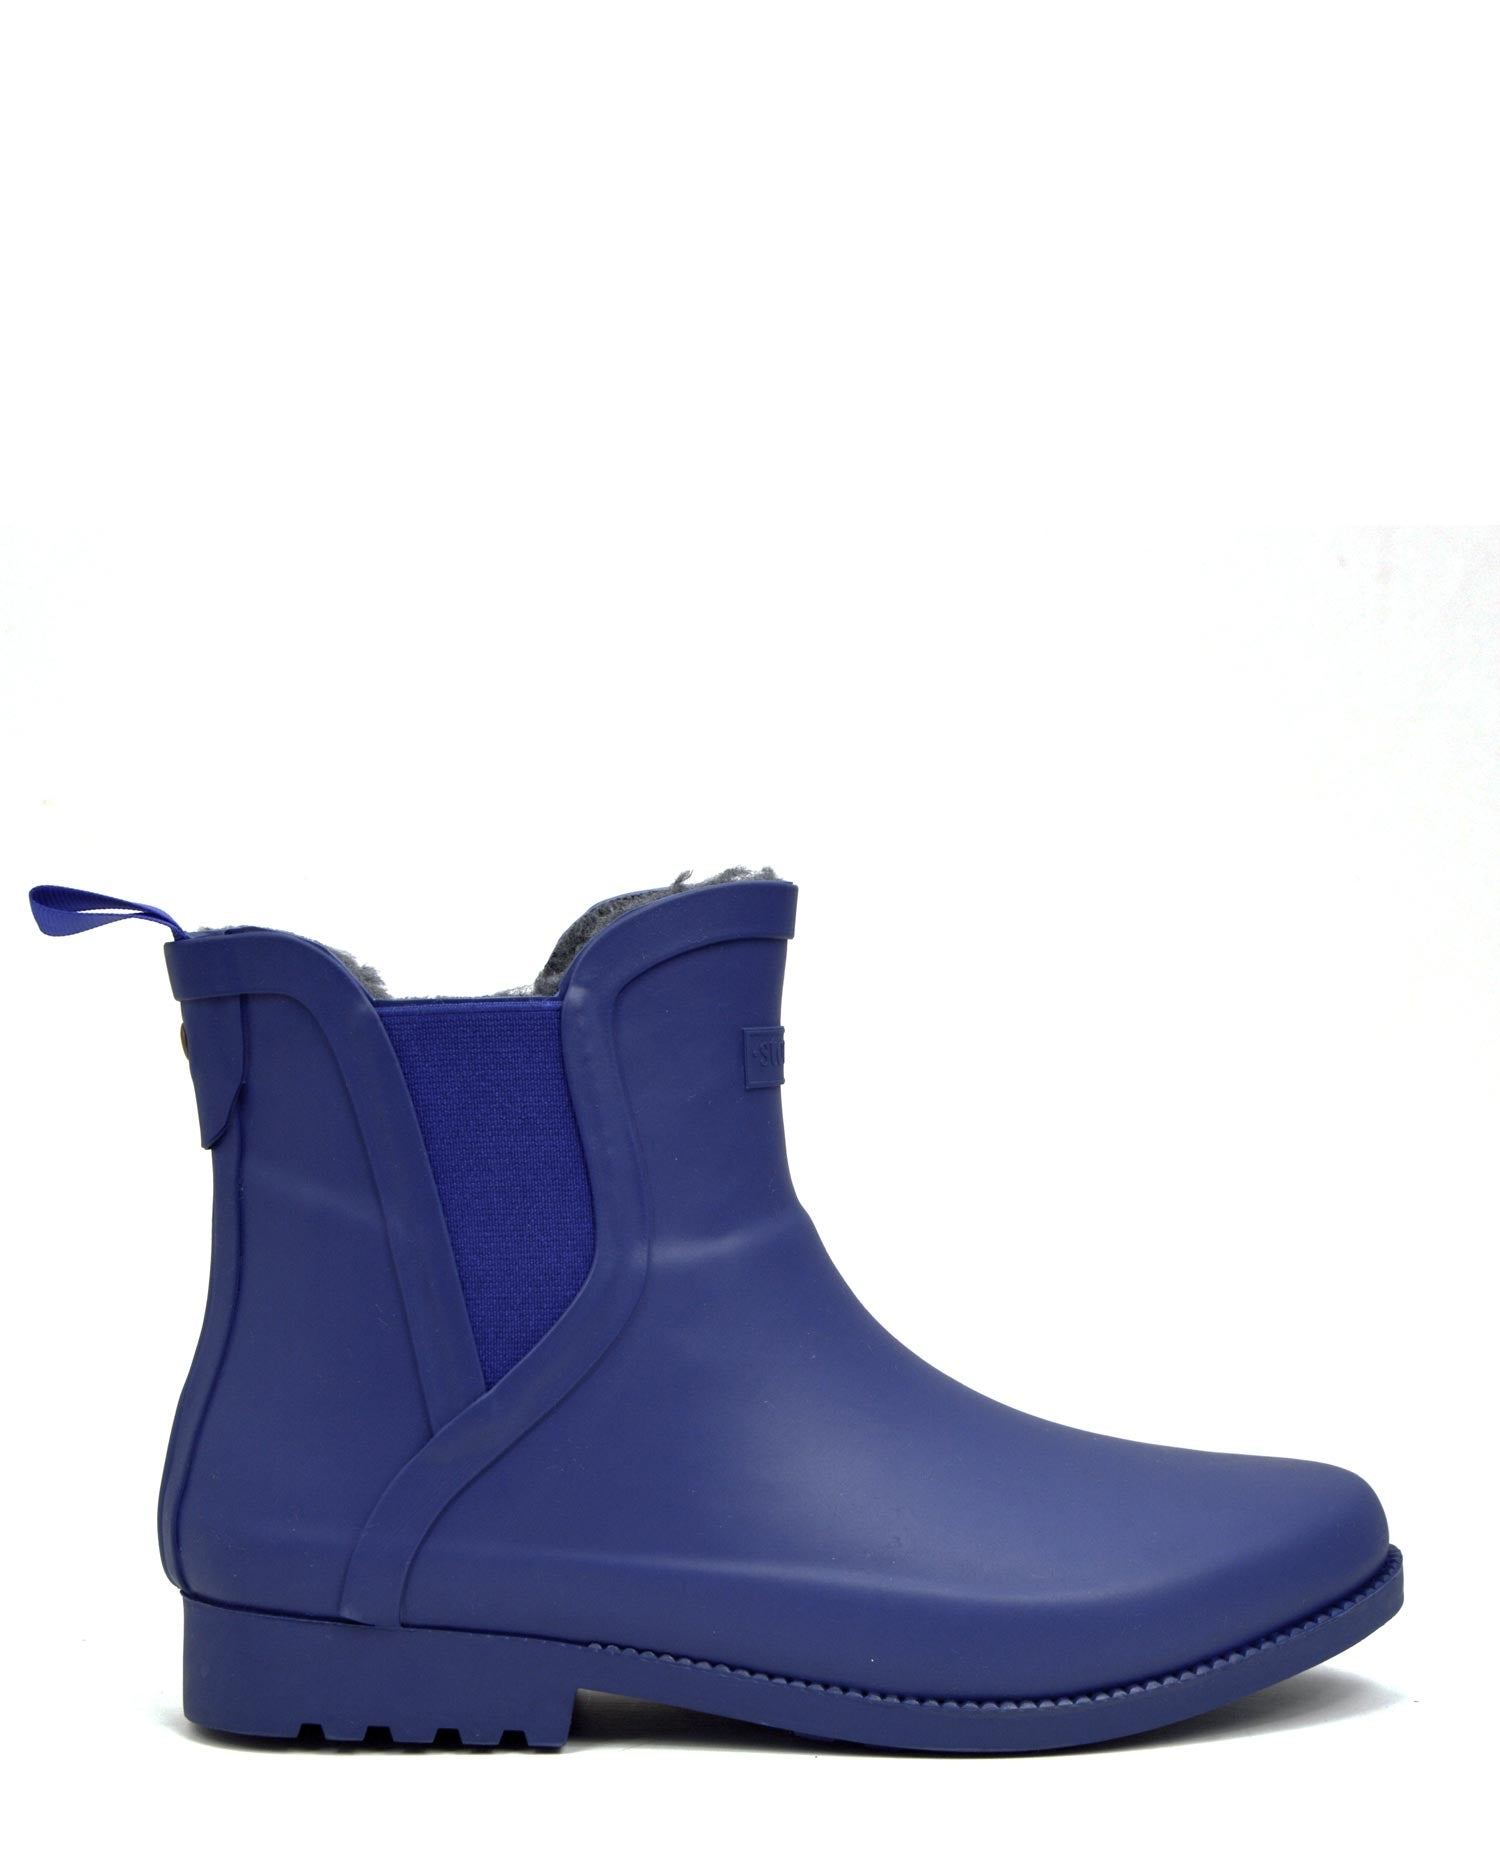 Original Fleeced II Blue Ankle Gumboots